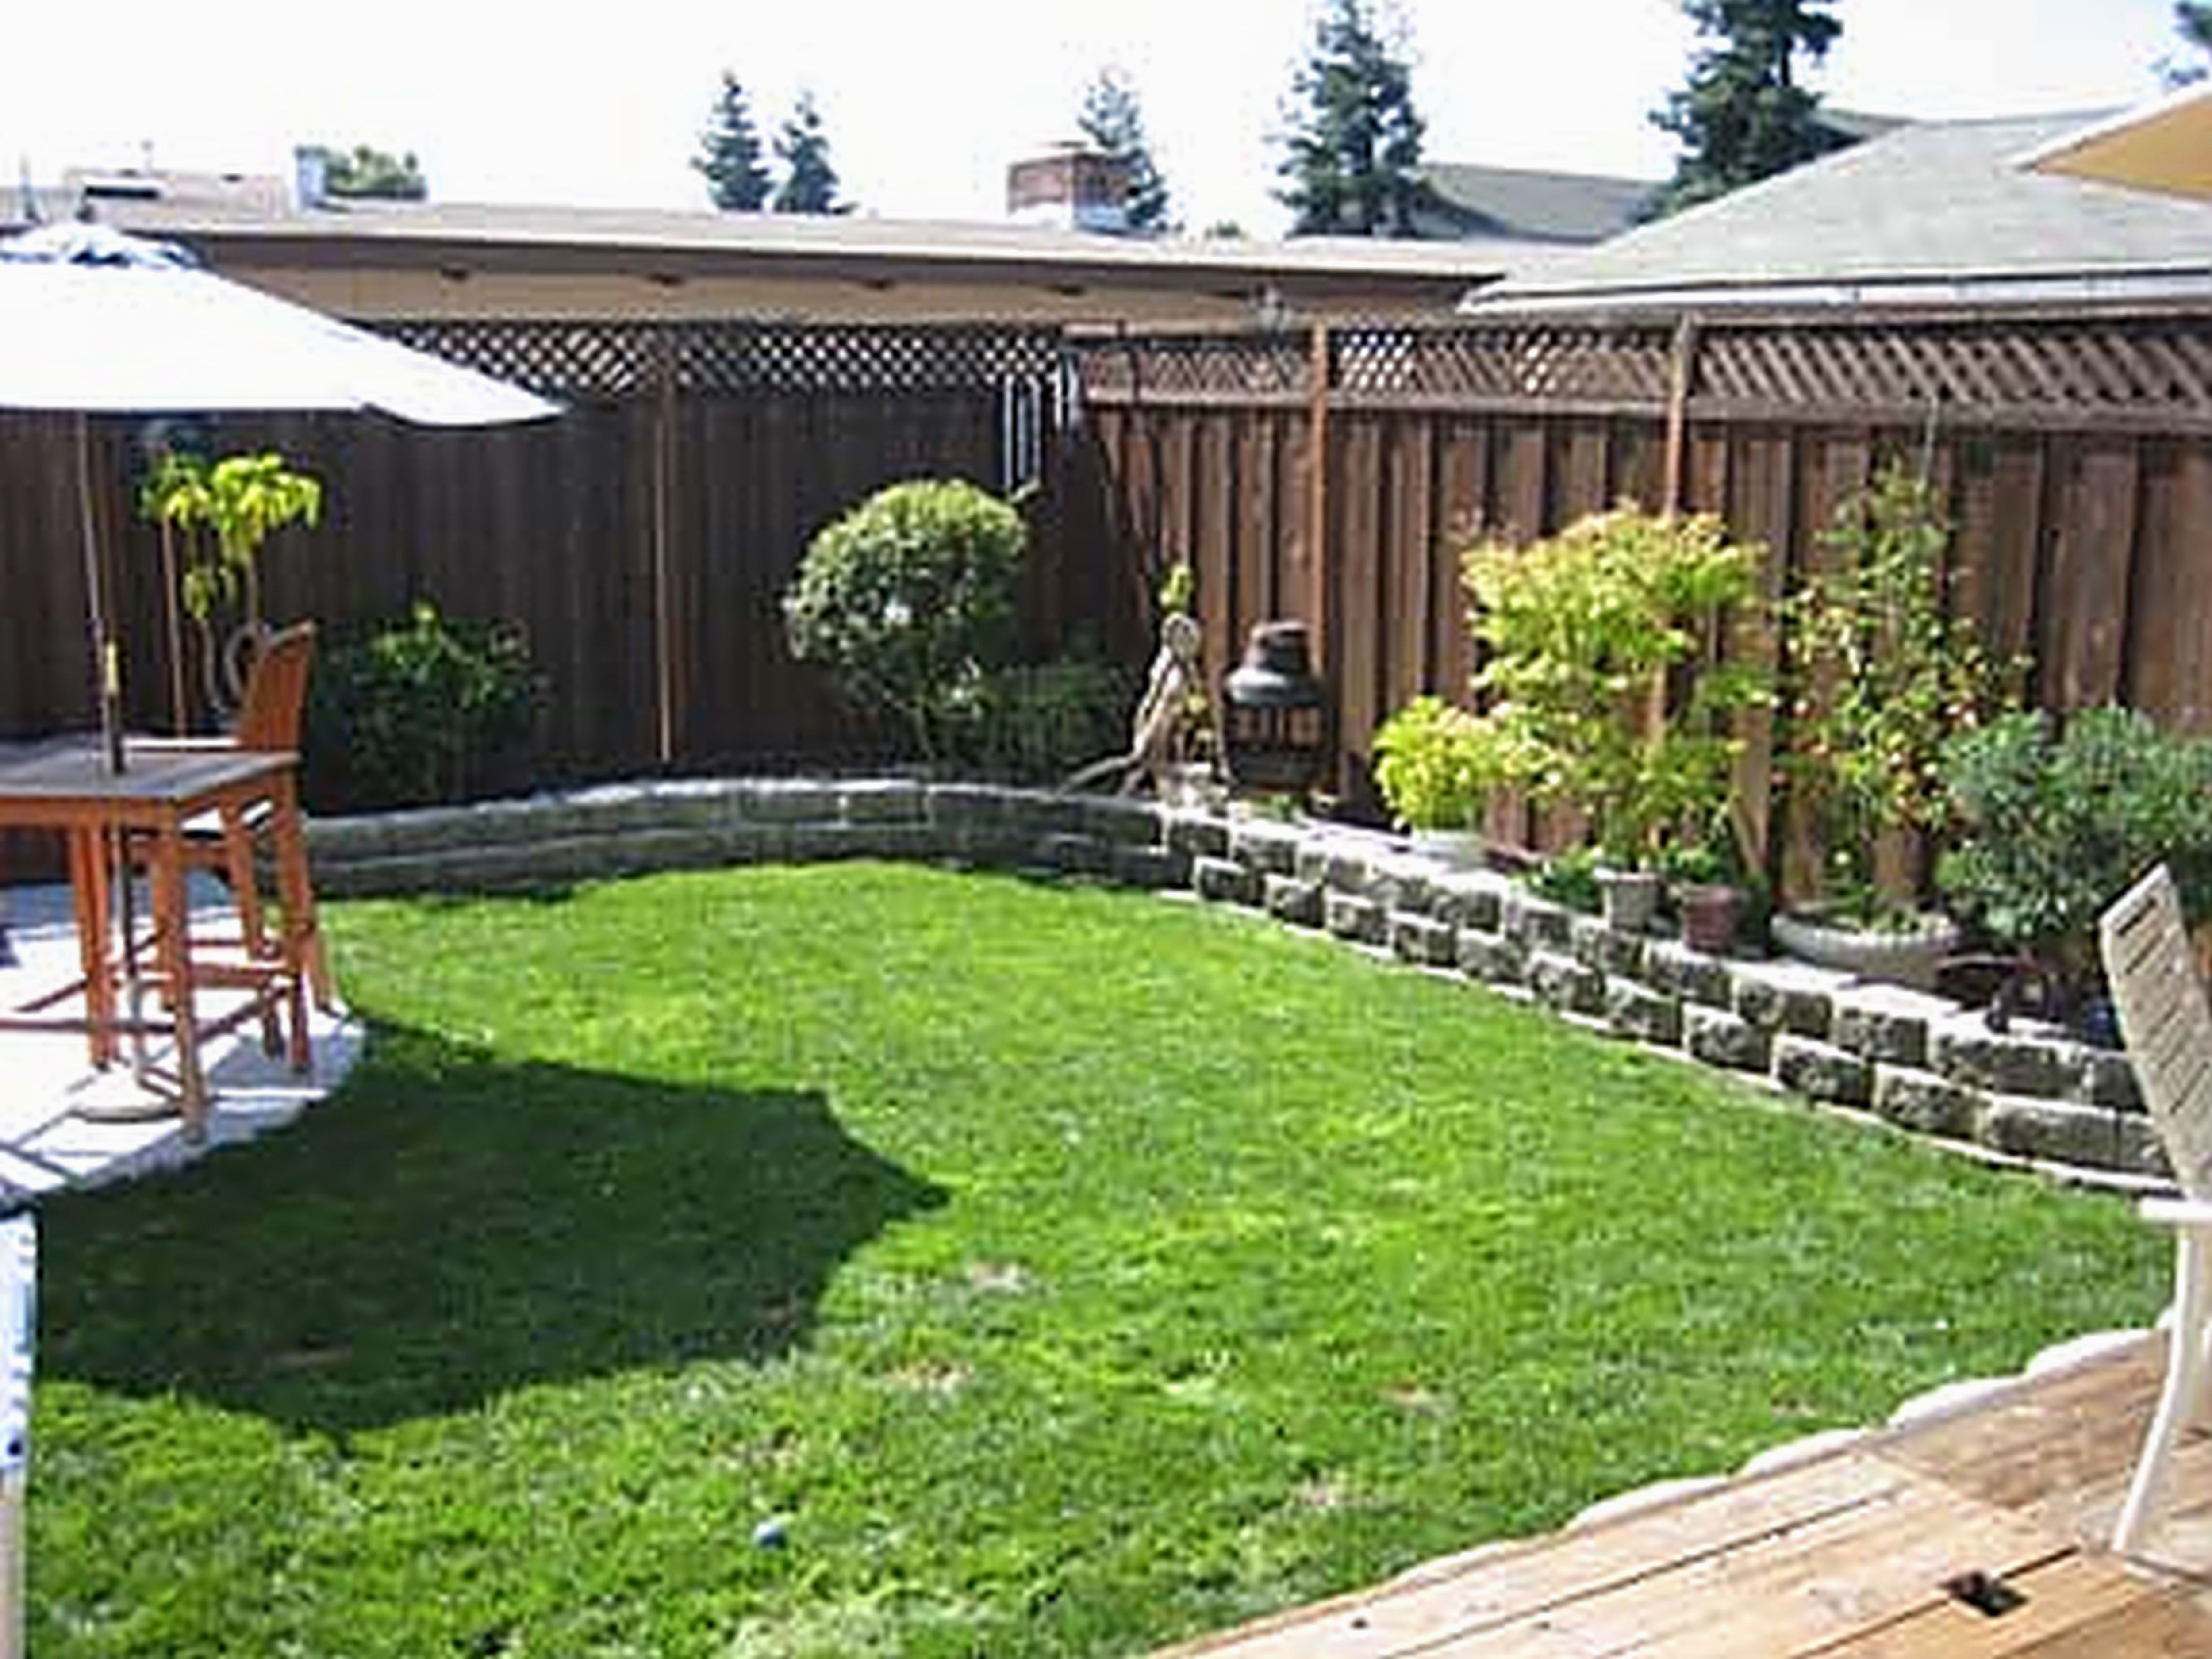 12 Easy Diy Landscape Plans You Might Try For Your Backyard Yard Landscaping Ideas O Small Backyard Gardens Small Backyard Landscaping Small Yard Landscaping